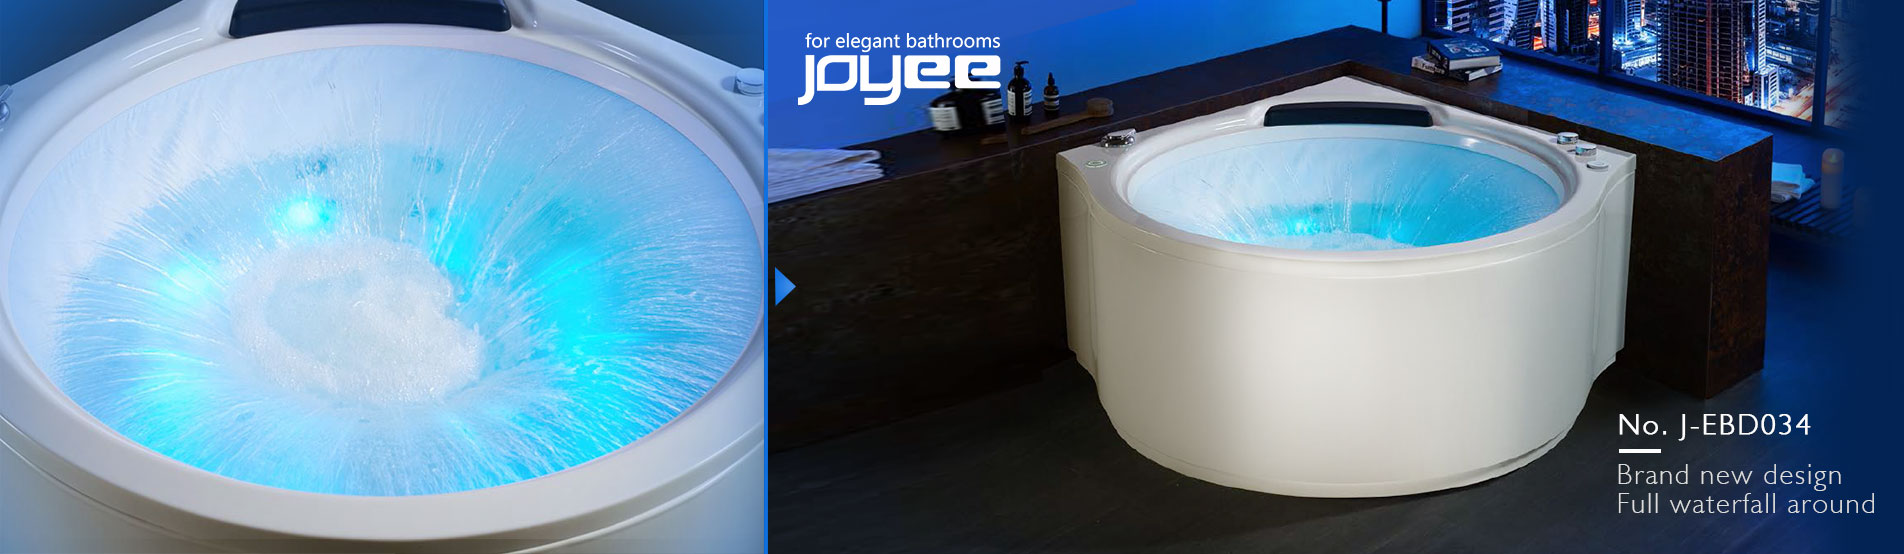 Joyee Bathtub, Jacuzzi, Steam room, Sauna room, Hot tub, SPA